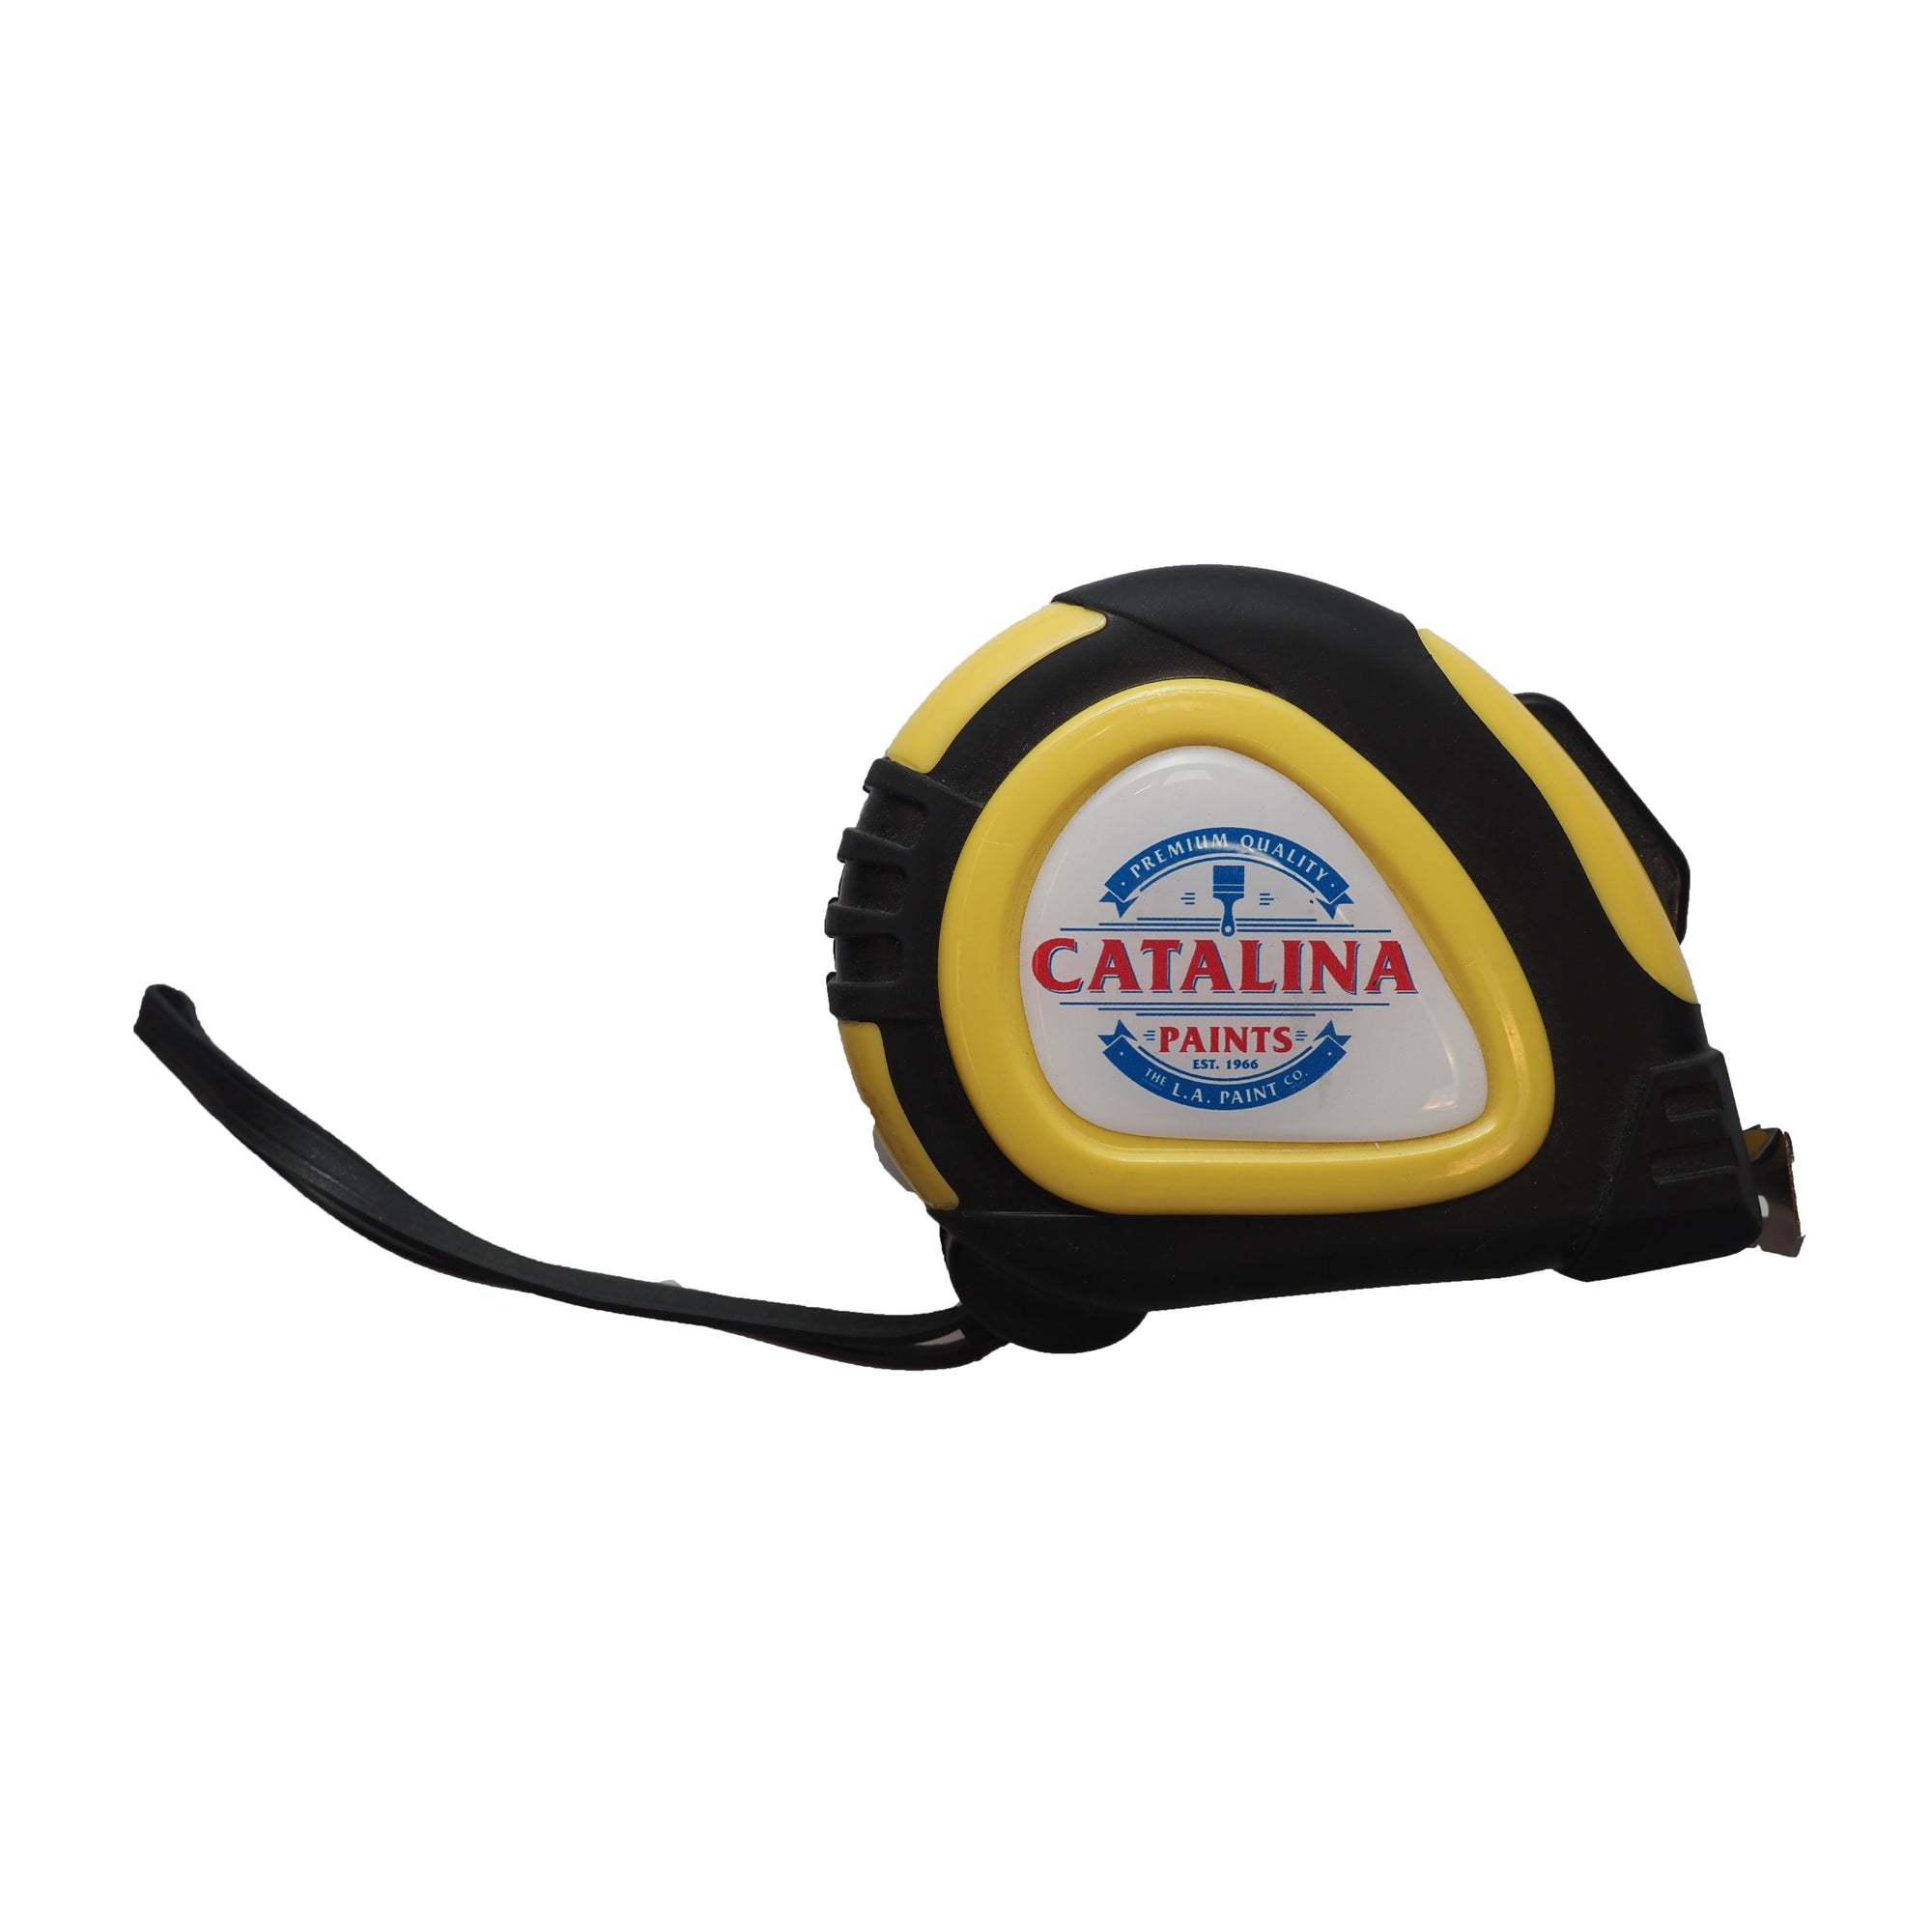 Catalina Paints Measuring Tape, available at Catalina Paints in CA.